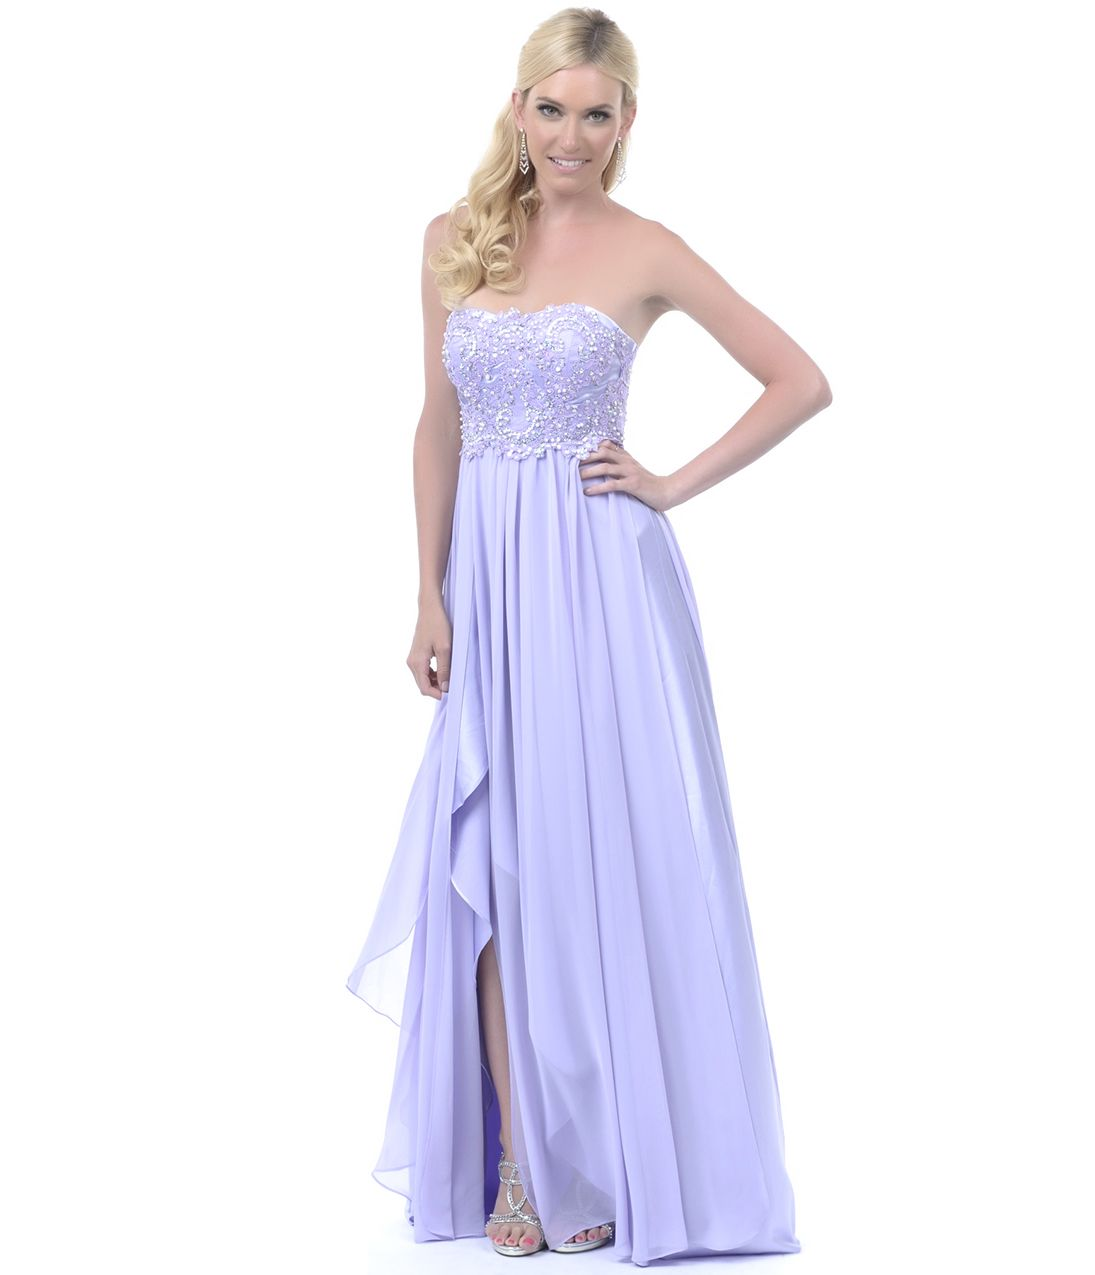 Wedding Lilac Prom Dresses collection lilac prom dresses pictures fashion trends and models 10 images about kara on pinterest long one